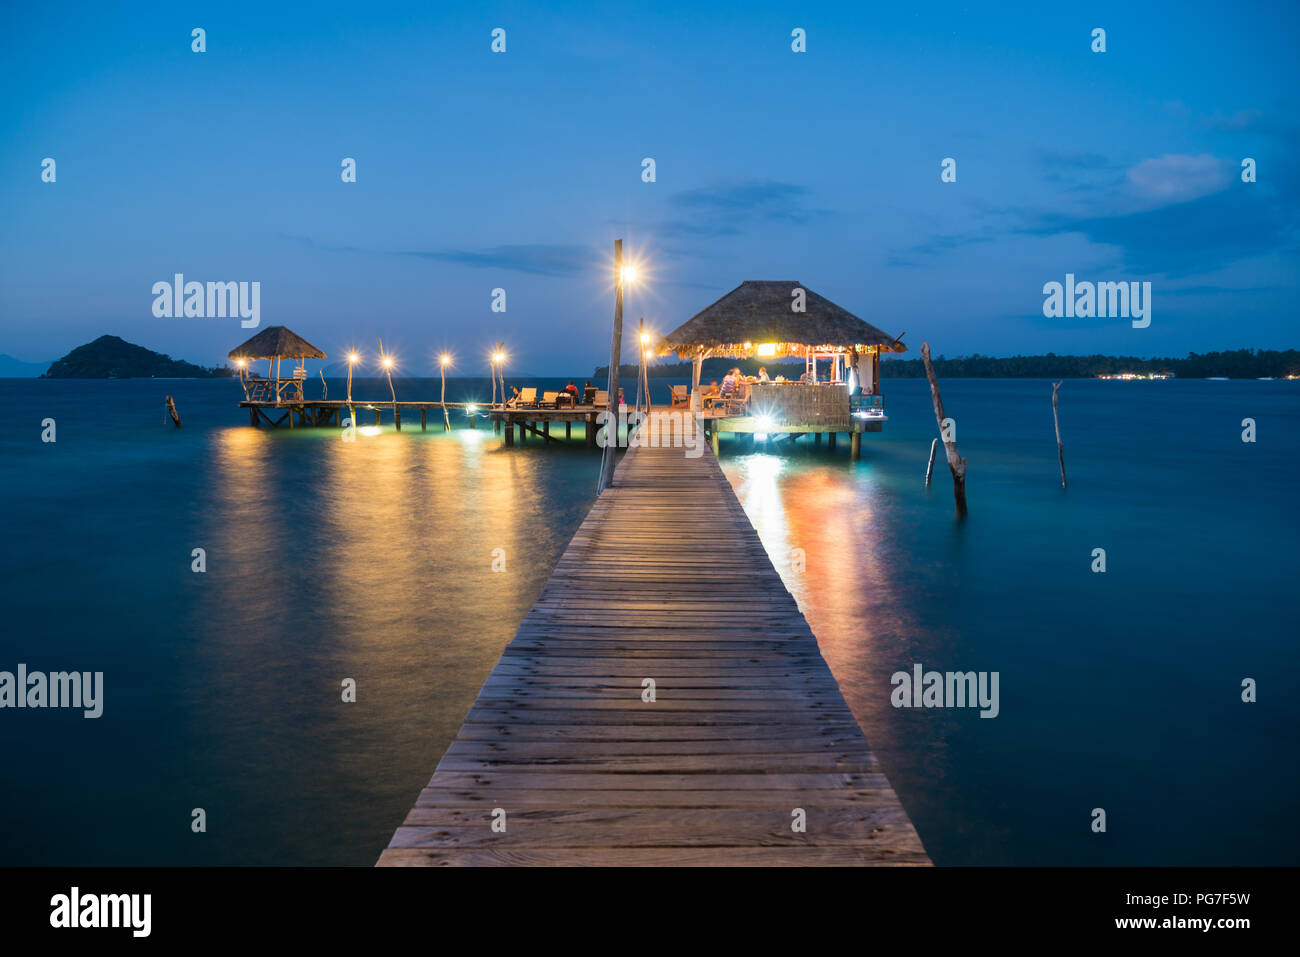 Wooden pier and hut in Phuket, Thailand. Summer, Travel, Vacation and Holiday concept. - Stock Image